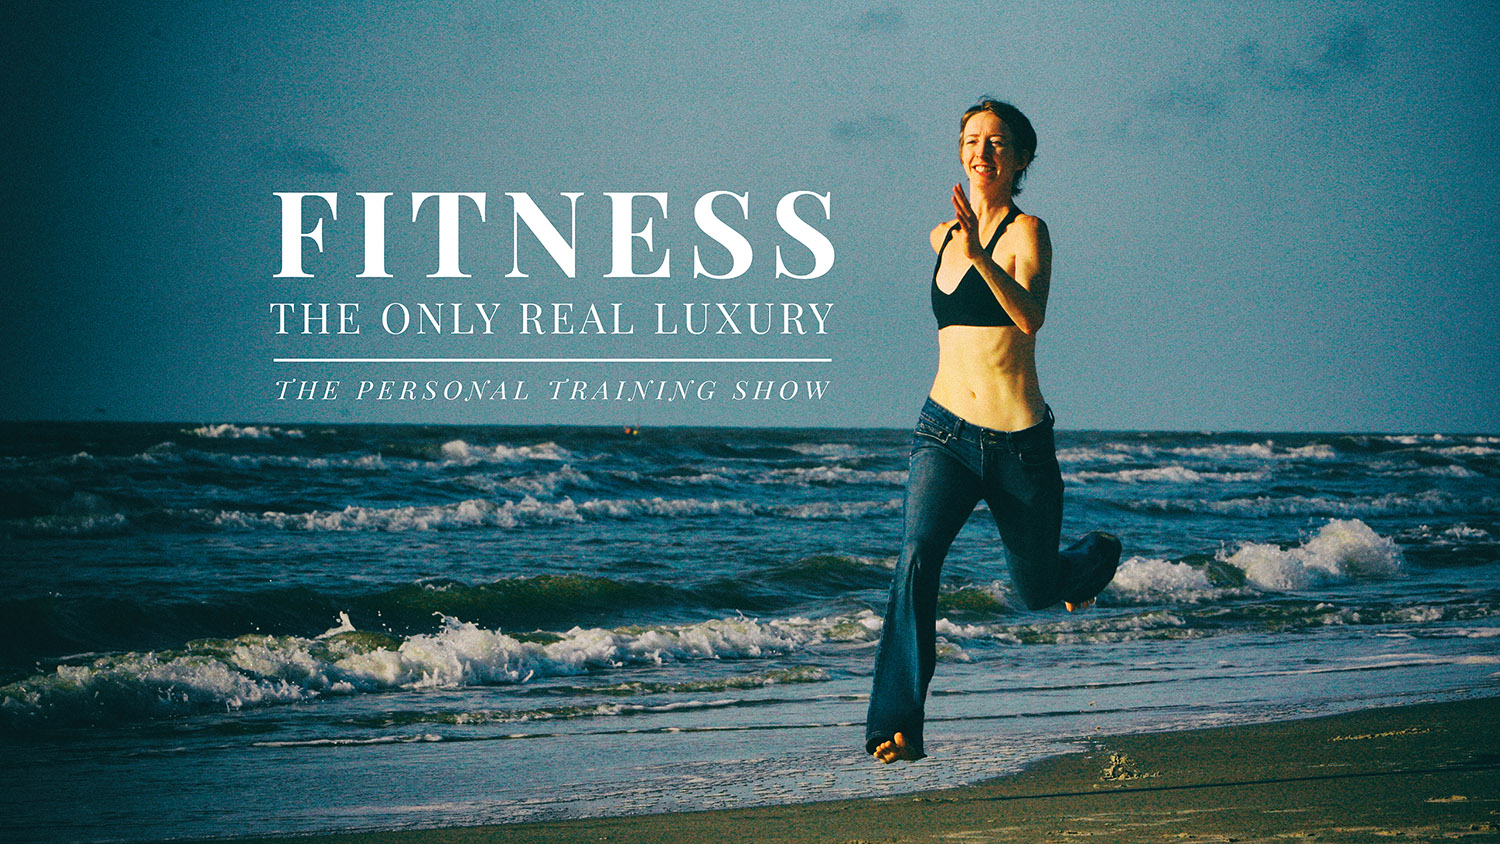 the-personal-training-show-ad-fitness-the-only-real-luxury.jpg